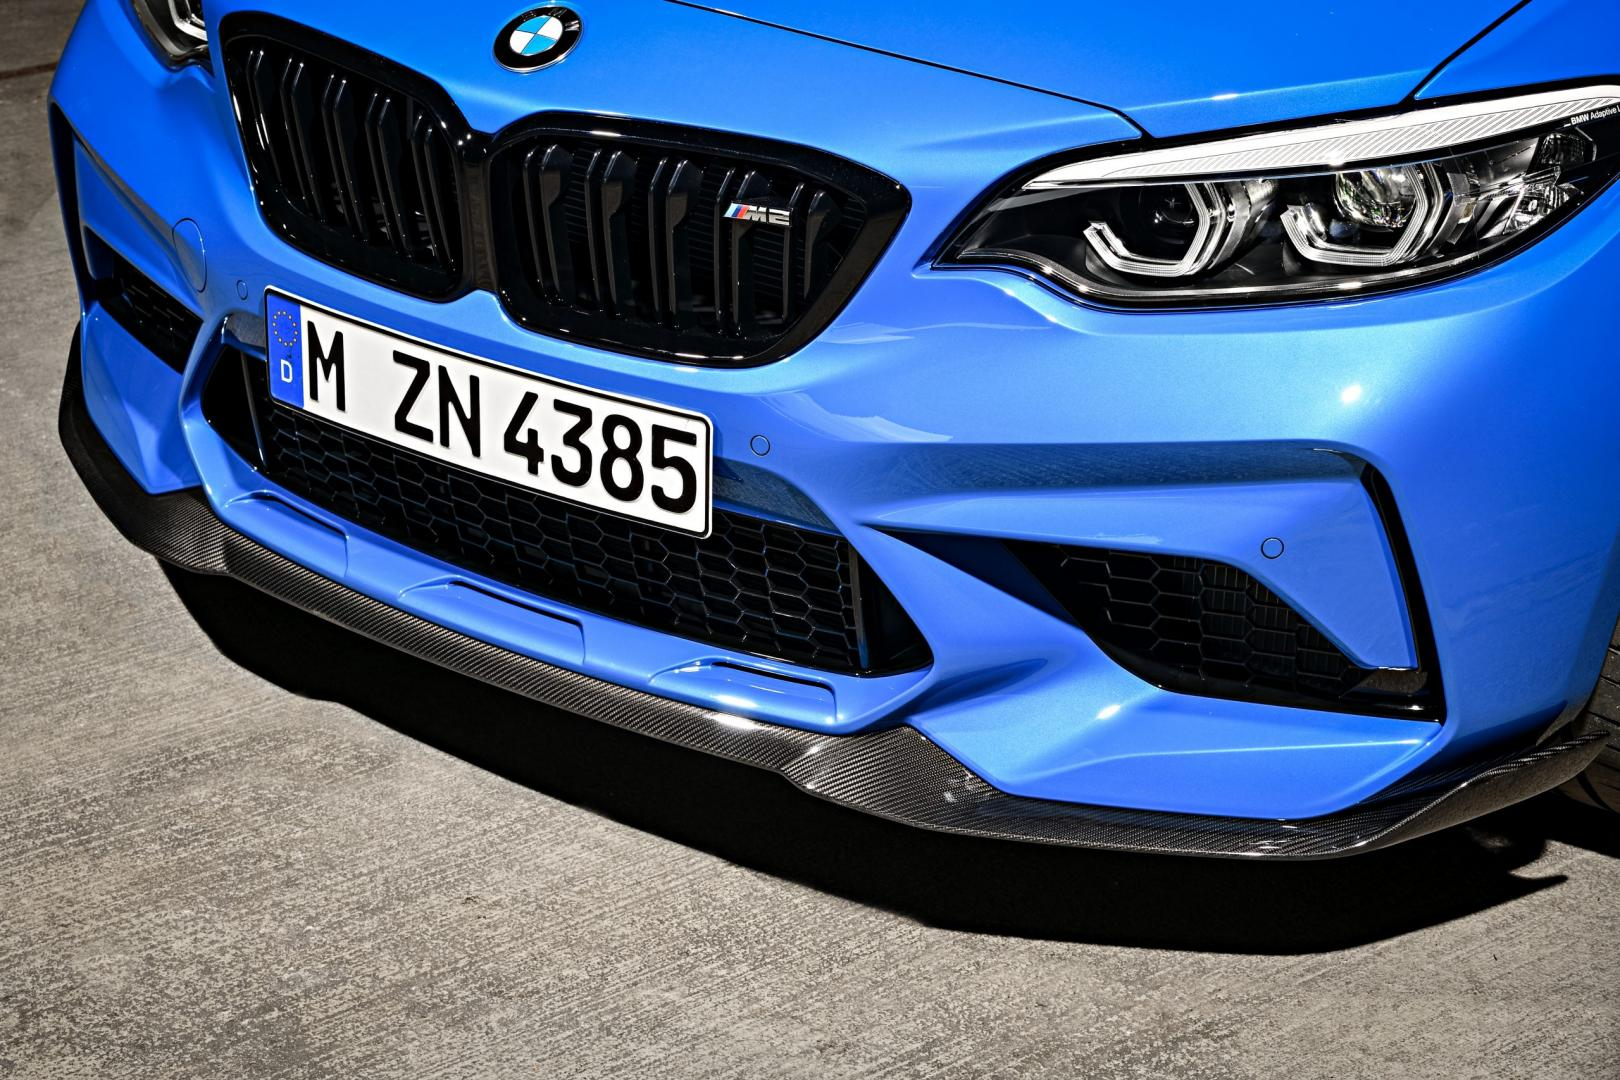 BMW M2 CS 2020 splitter